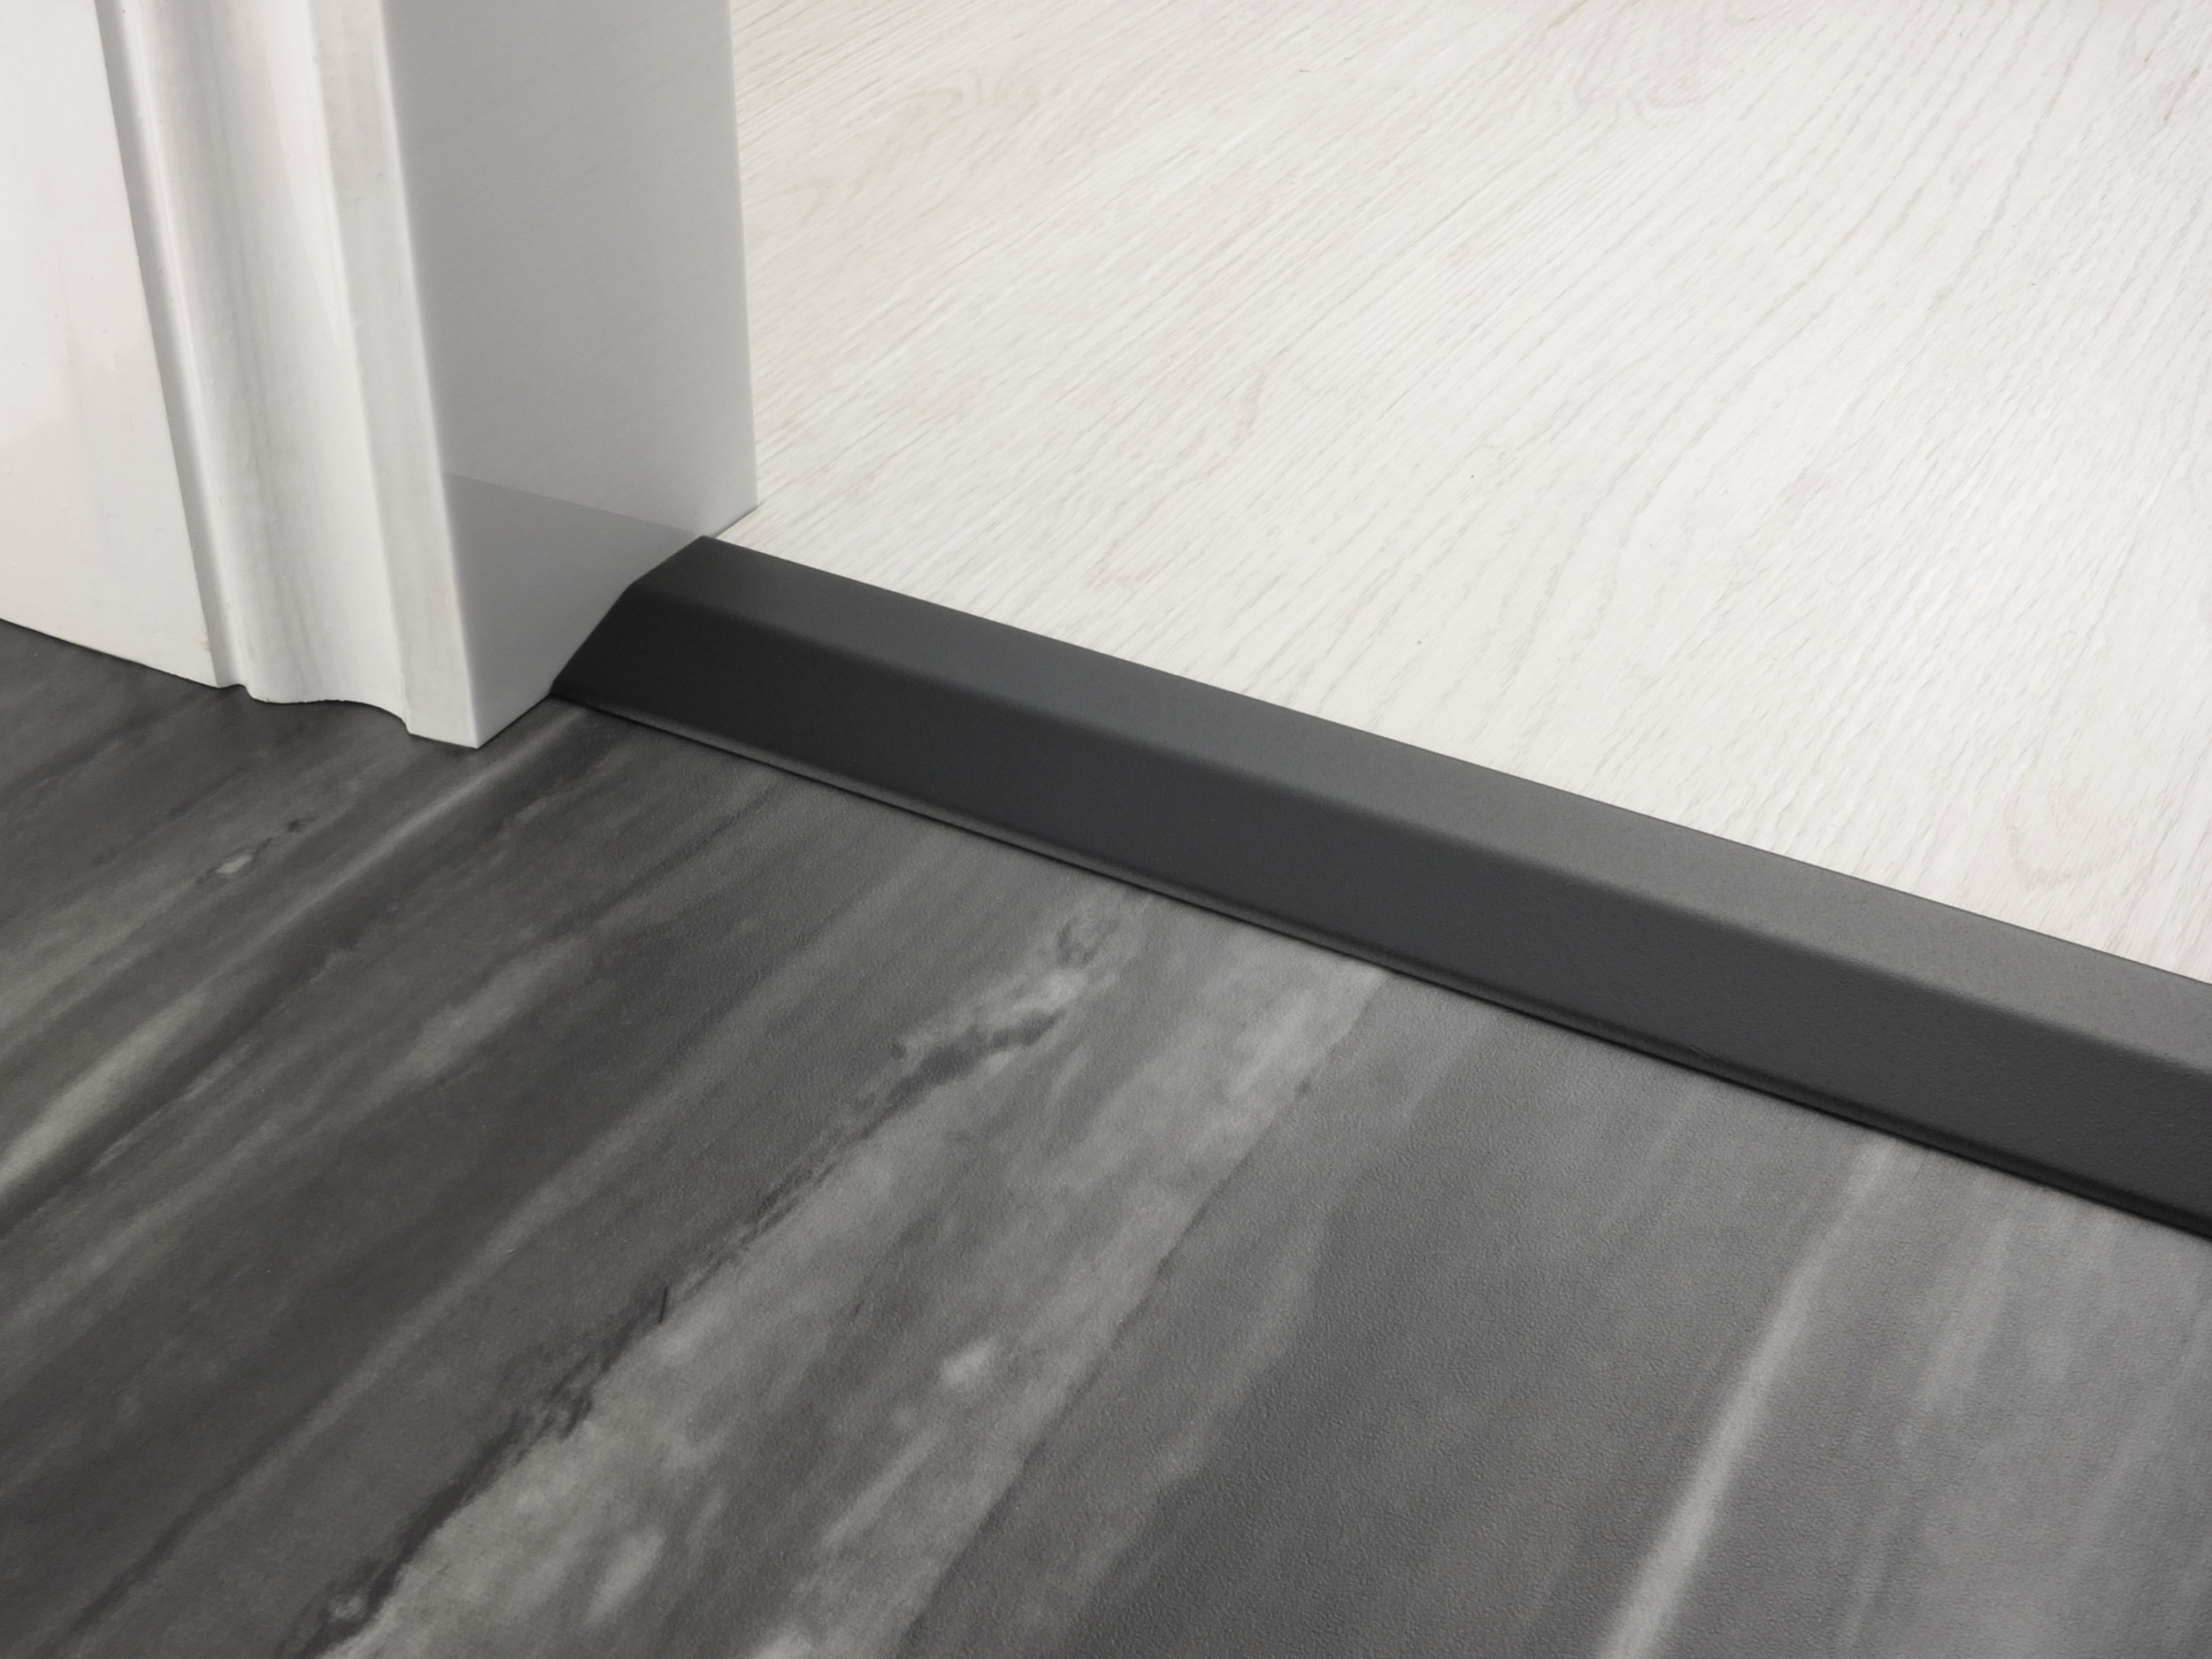 stairrods-doorbar-satin-black-two-way-ramp-8-9mm.jpg